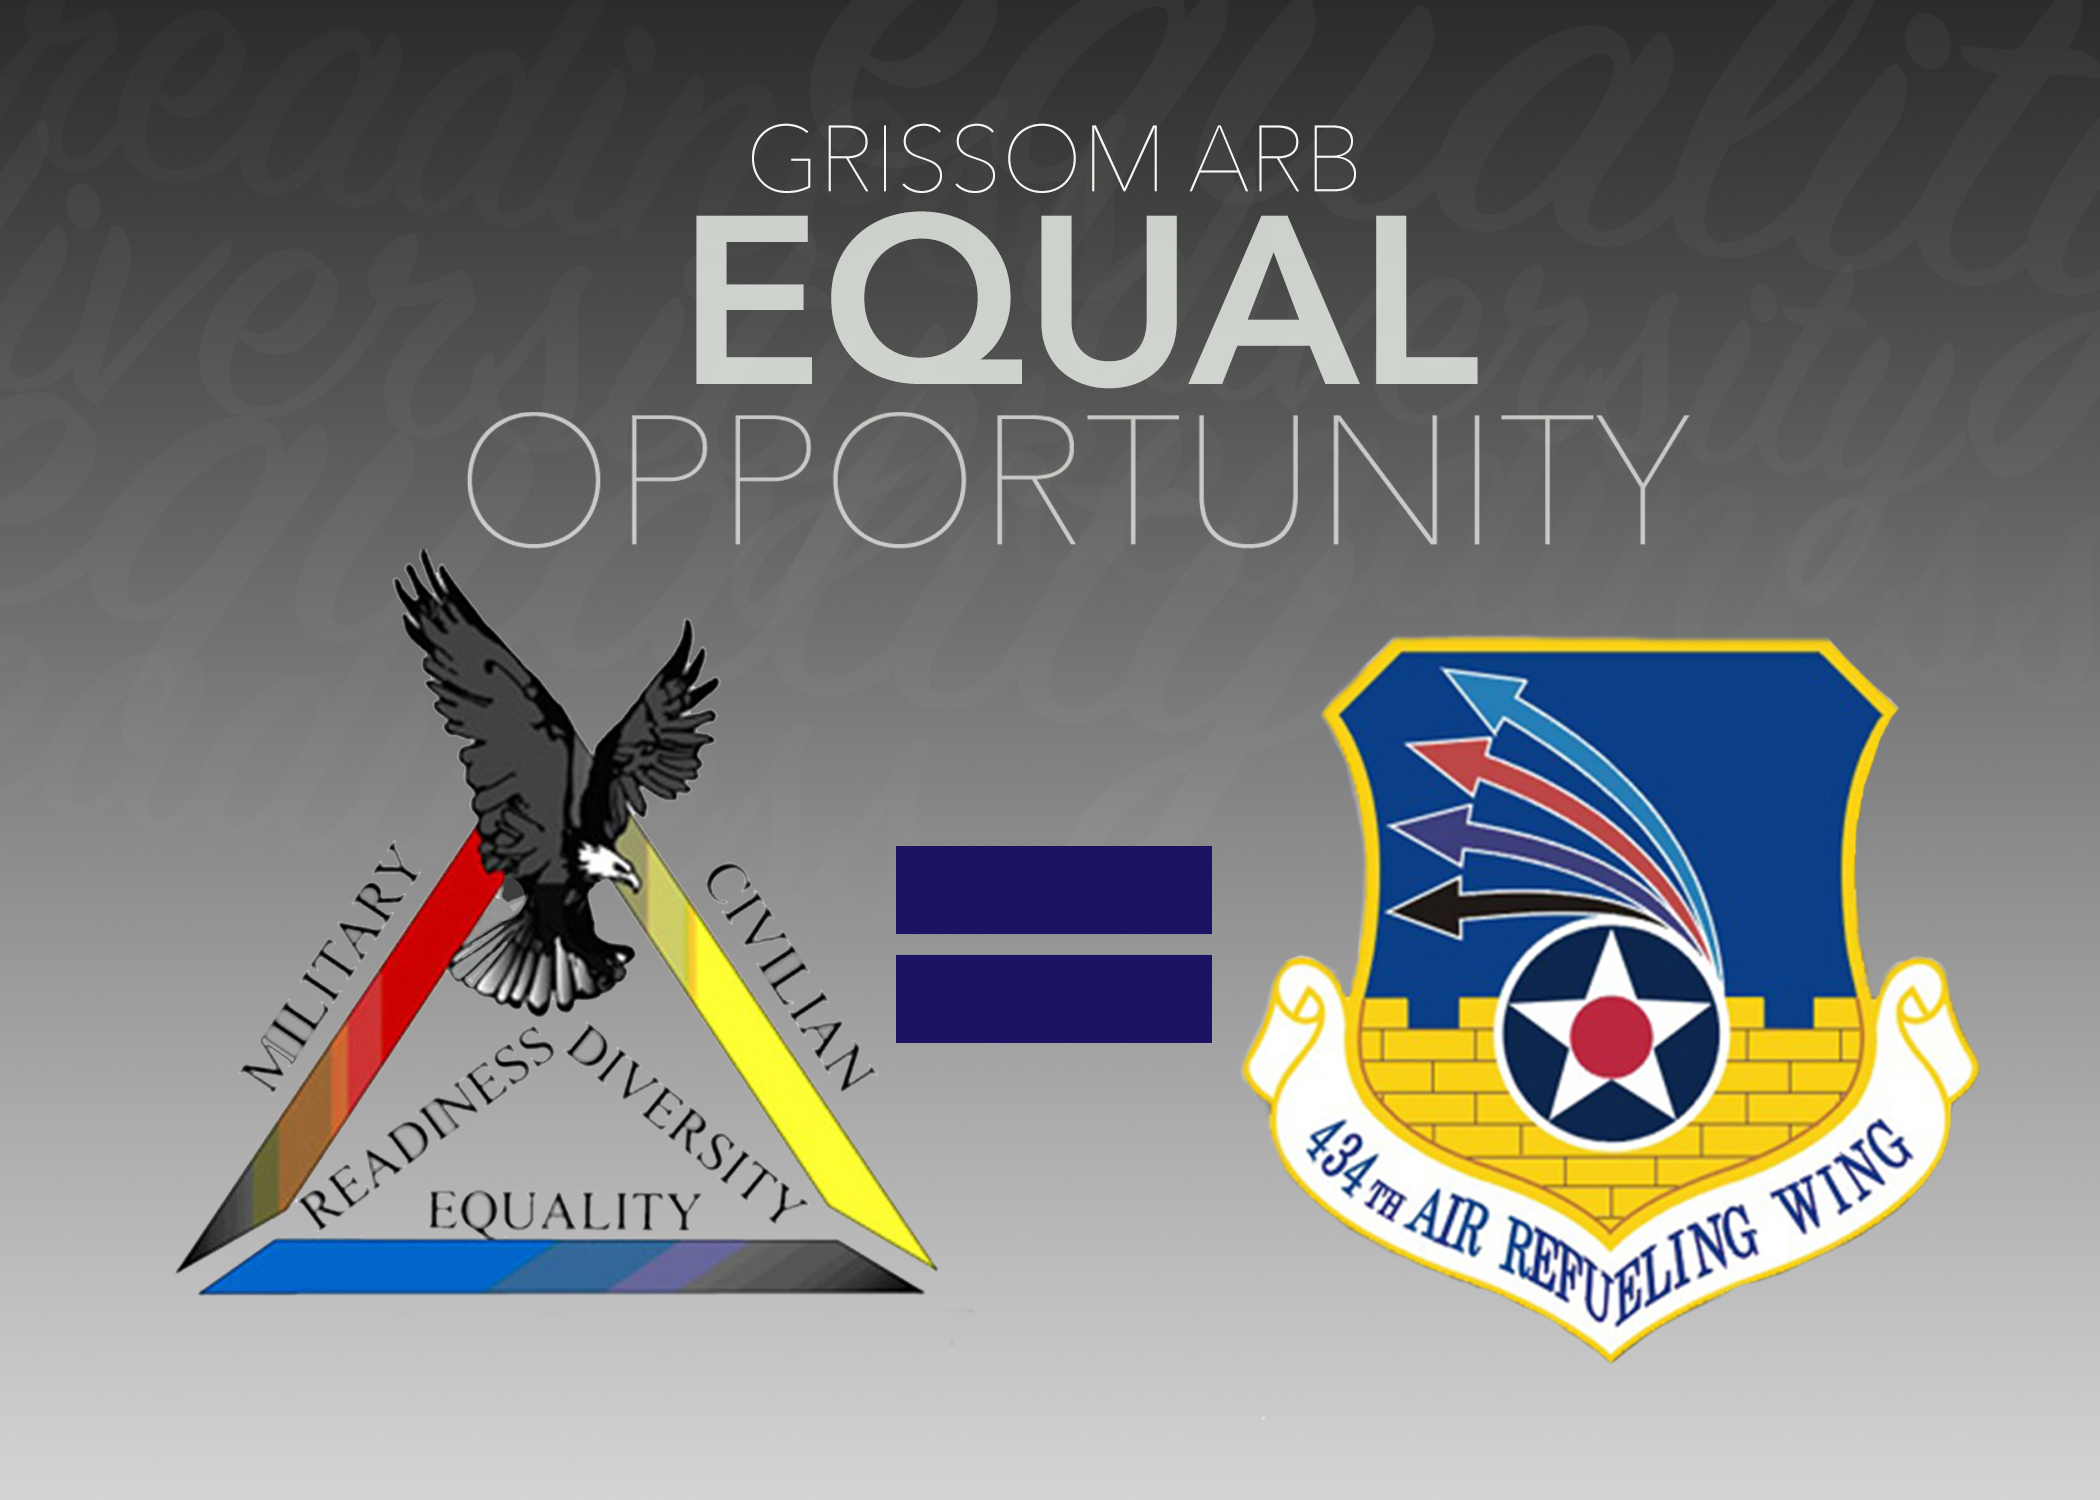 grissom arb lesbian personals Warning this site contains sexually explicit, adult material and is for adults only by entering this site, you certify that you are 18 years.